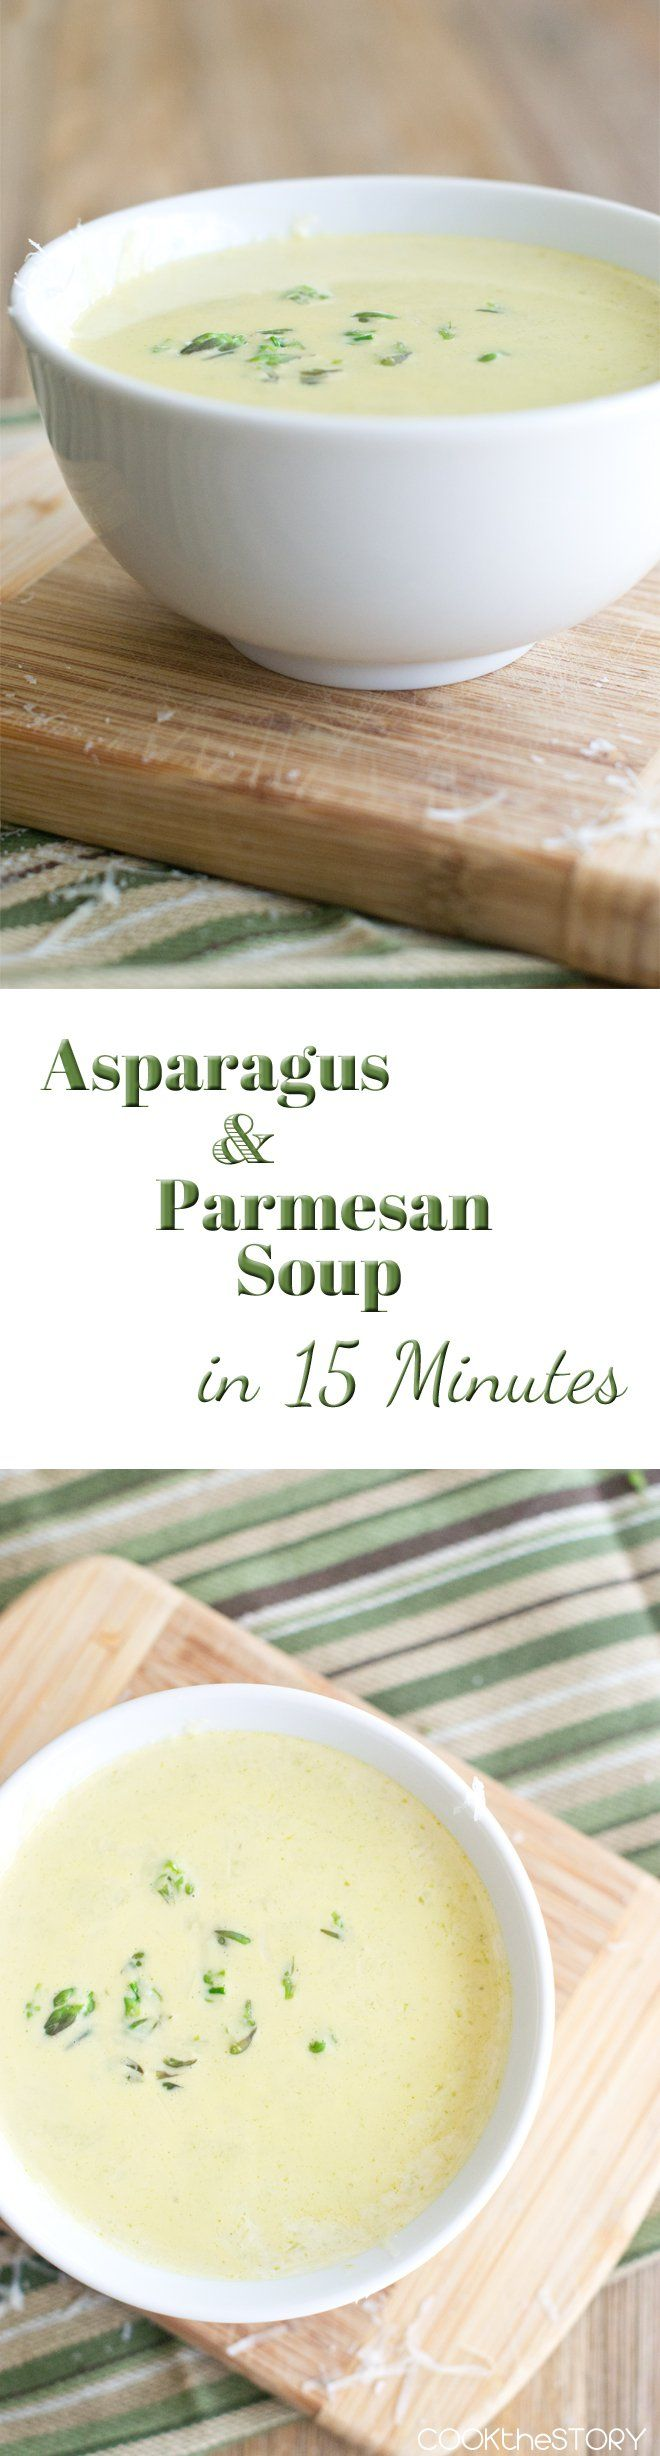 Asparagus and Parmesan Soup in 15 Minutes  FEED ME SEYMOUR